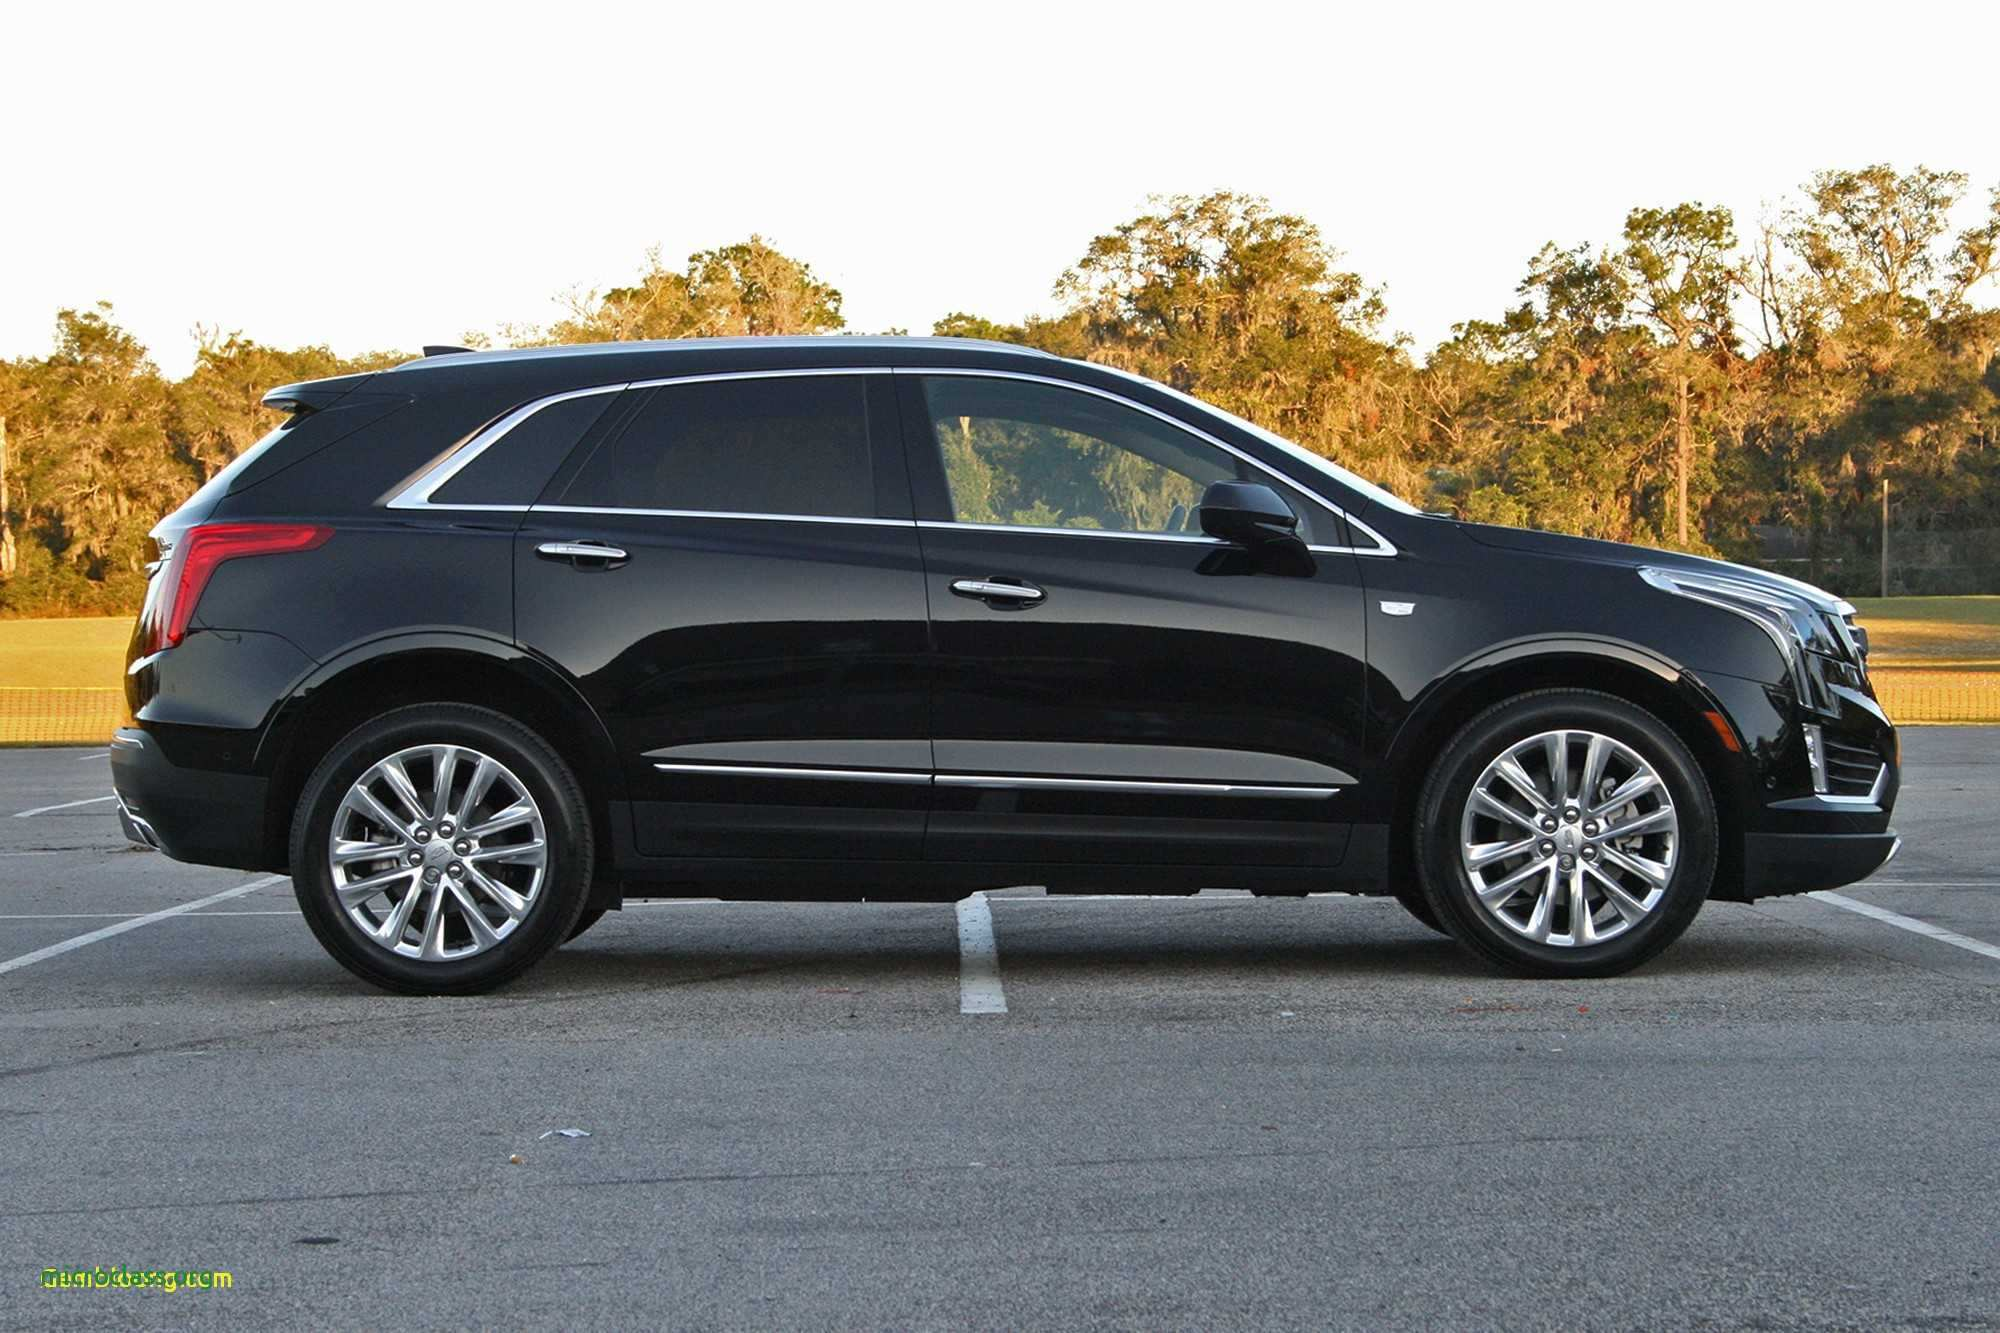 92 Great The Cadillac 2019 Srx Review And Release Date Reviews with The Cadillac 2019 Srx Review And Release Date